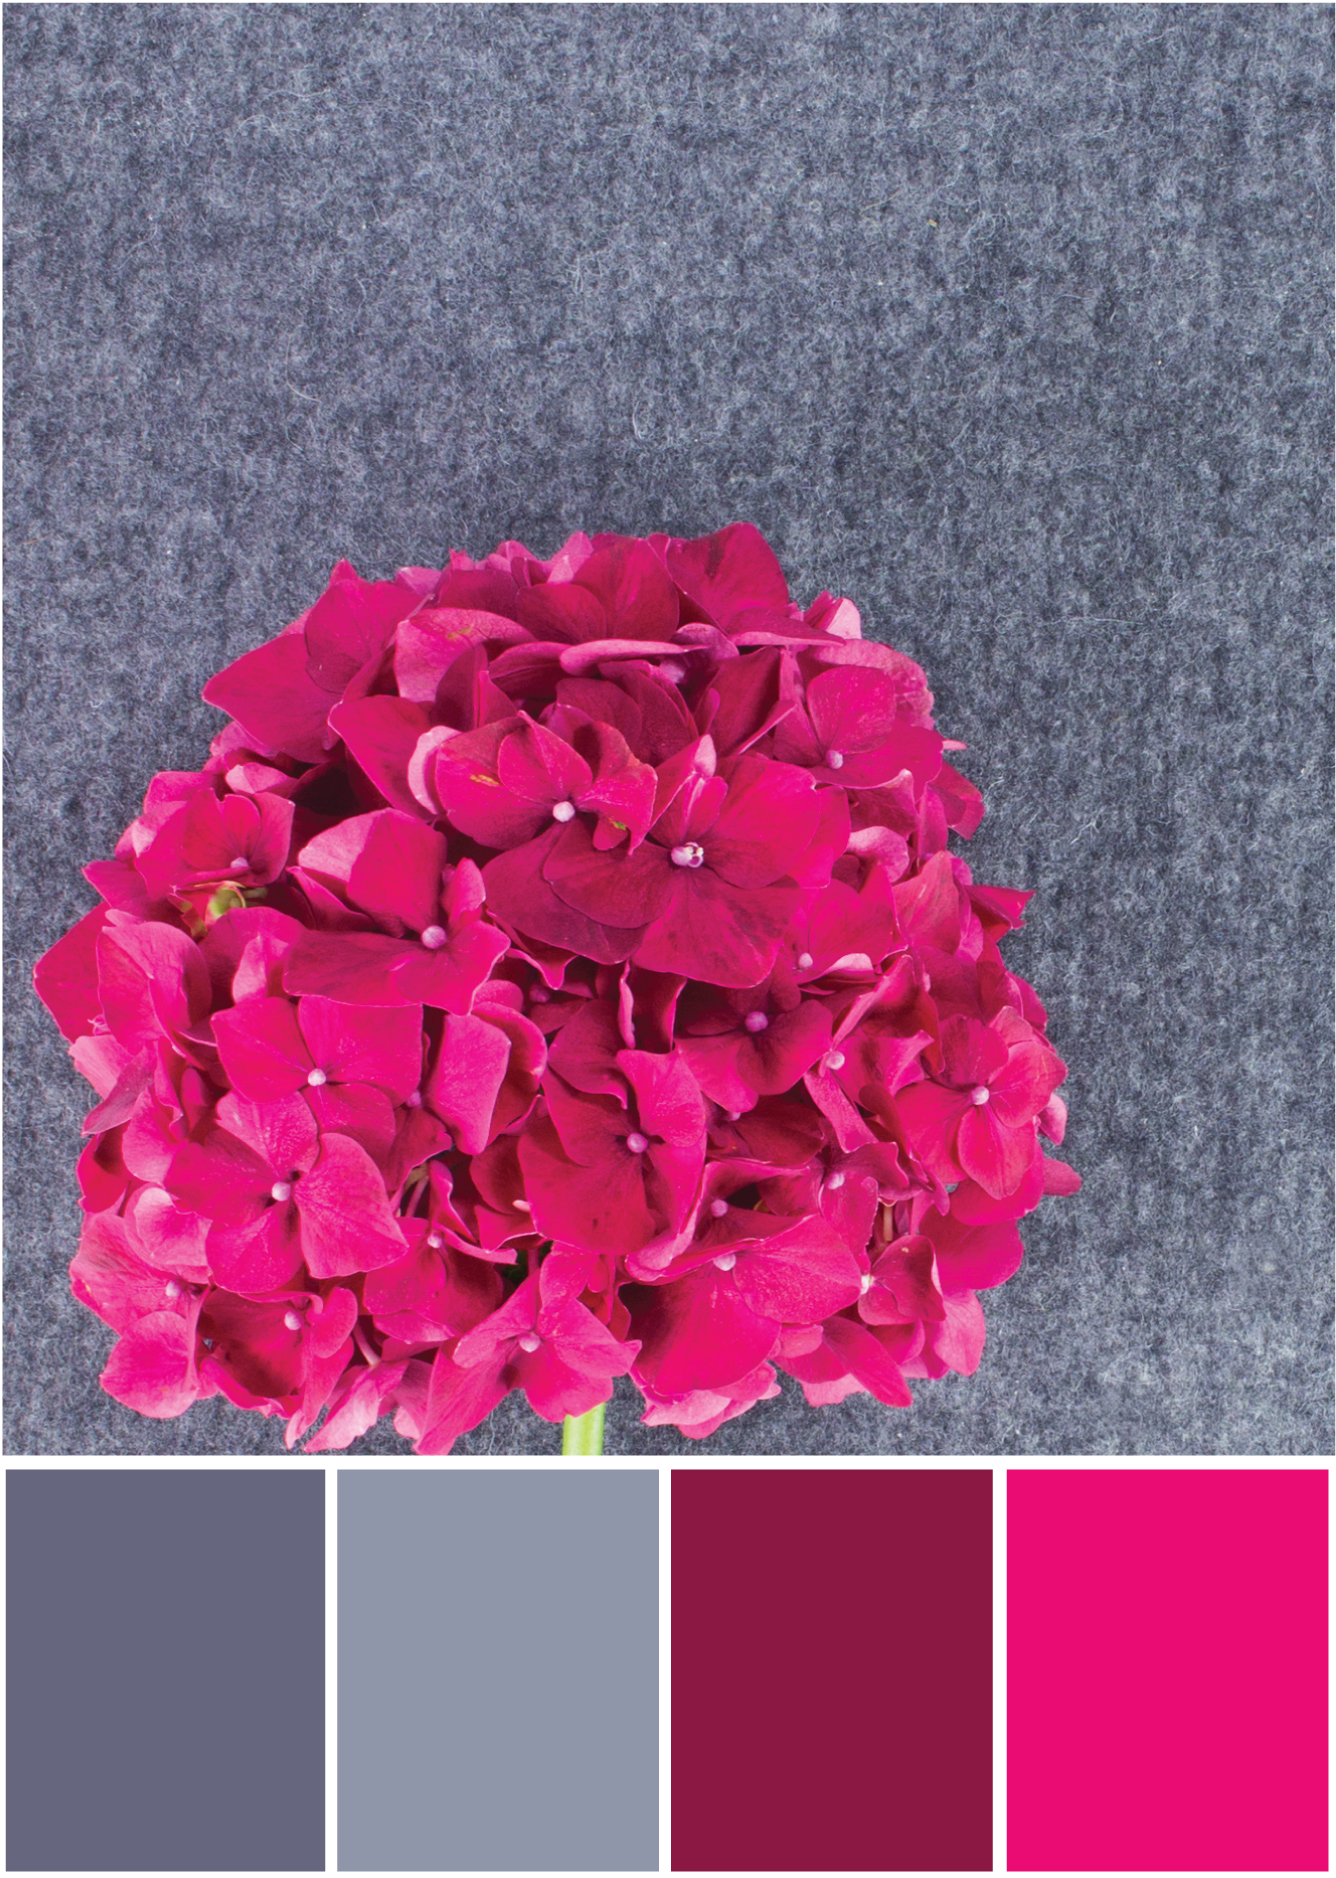 Farbpalette Grau - Pink -Tweed & Greet